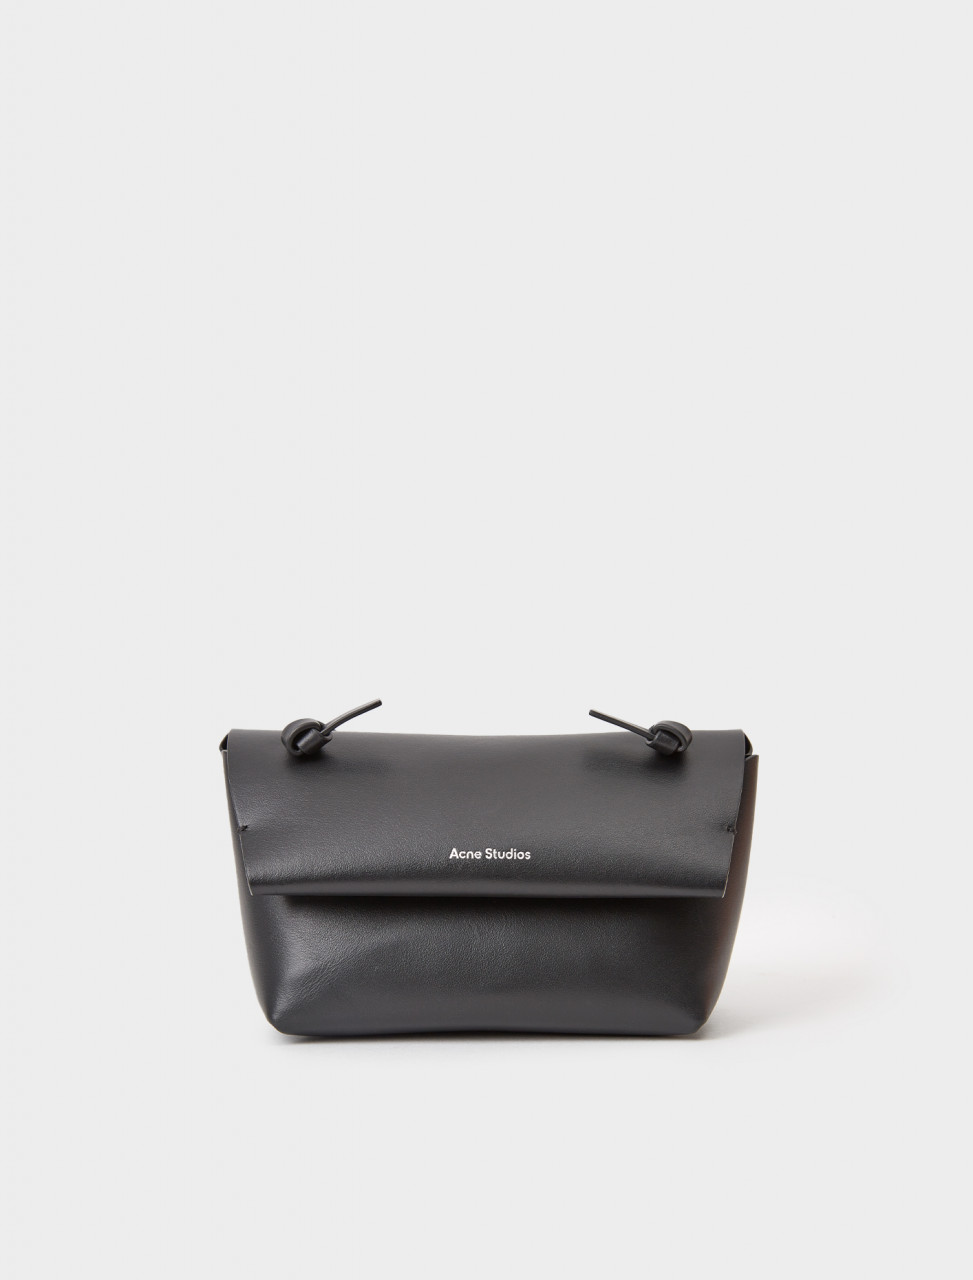 CG0151-900 ACNE STUDIOS KNOTTED STRAP PURSE BLACK